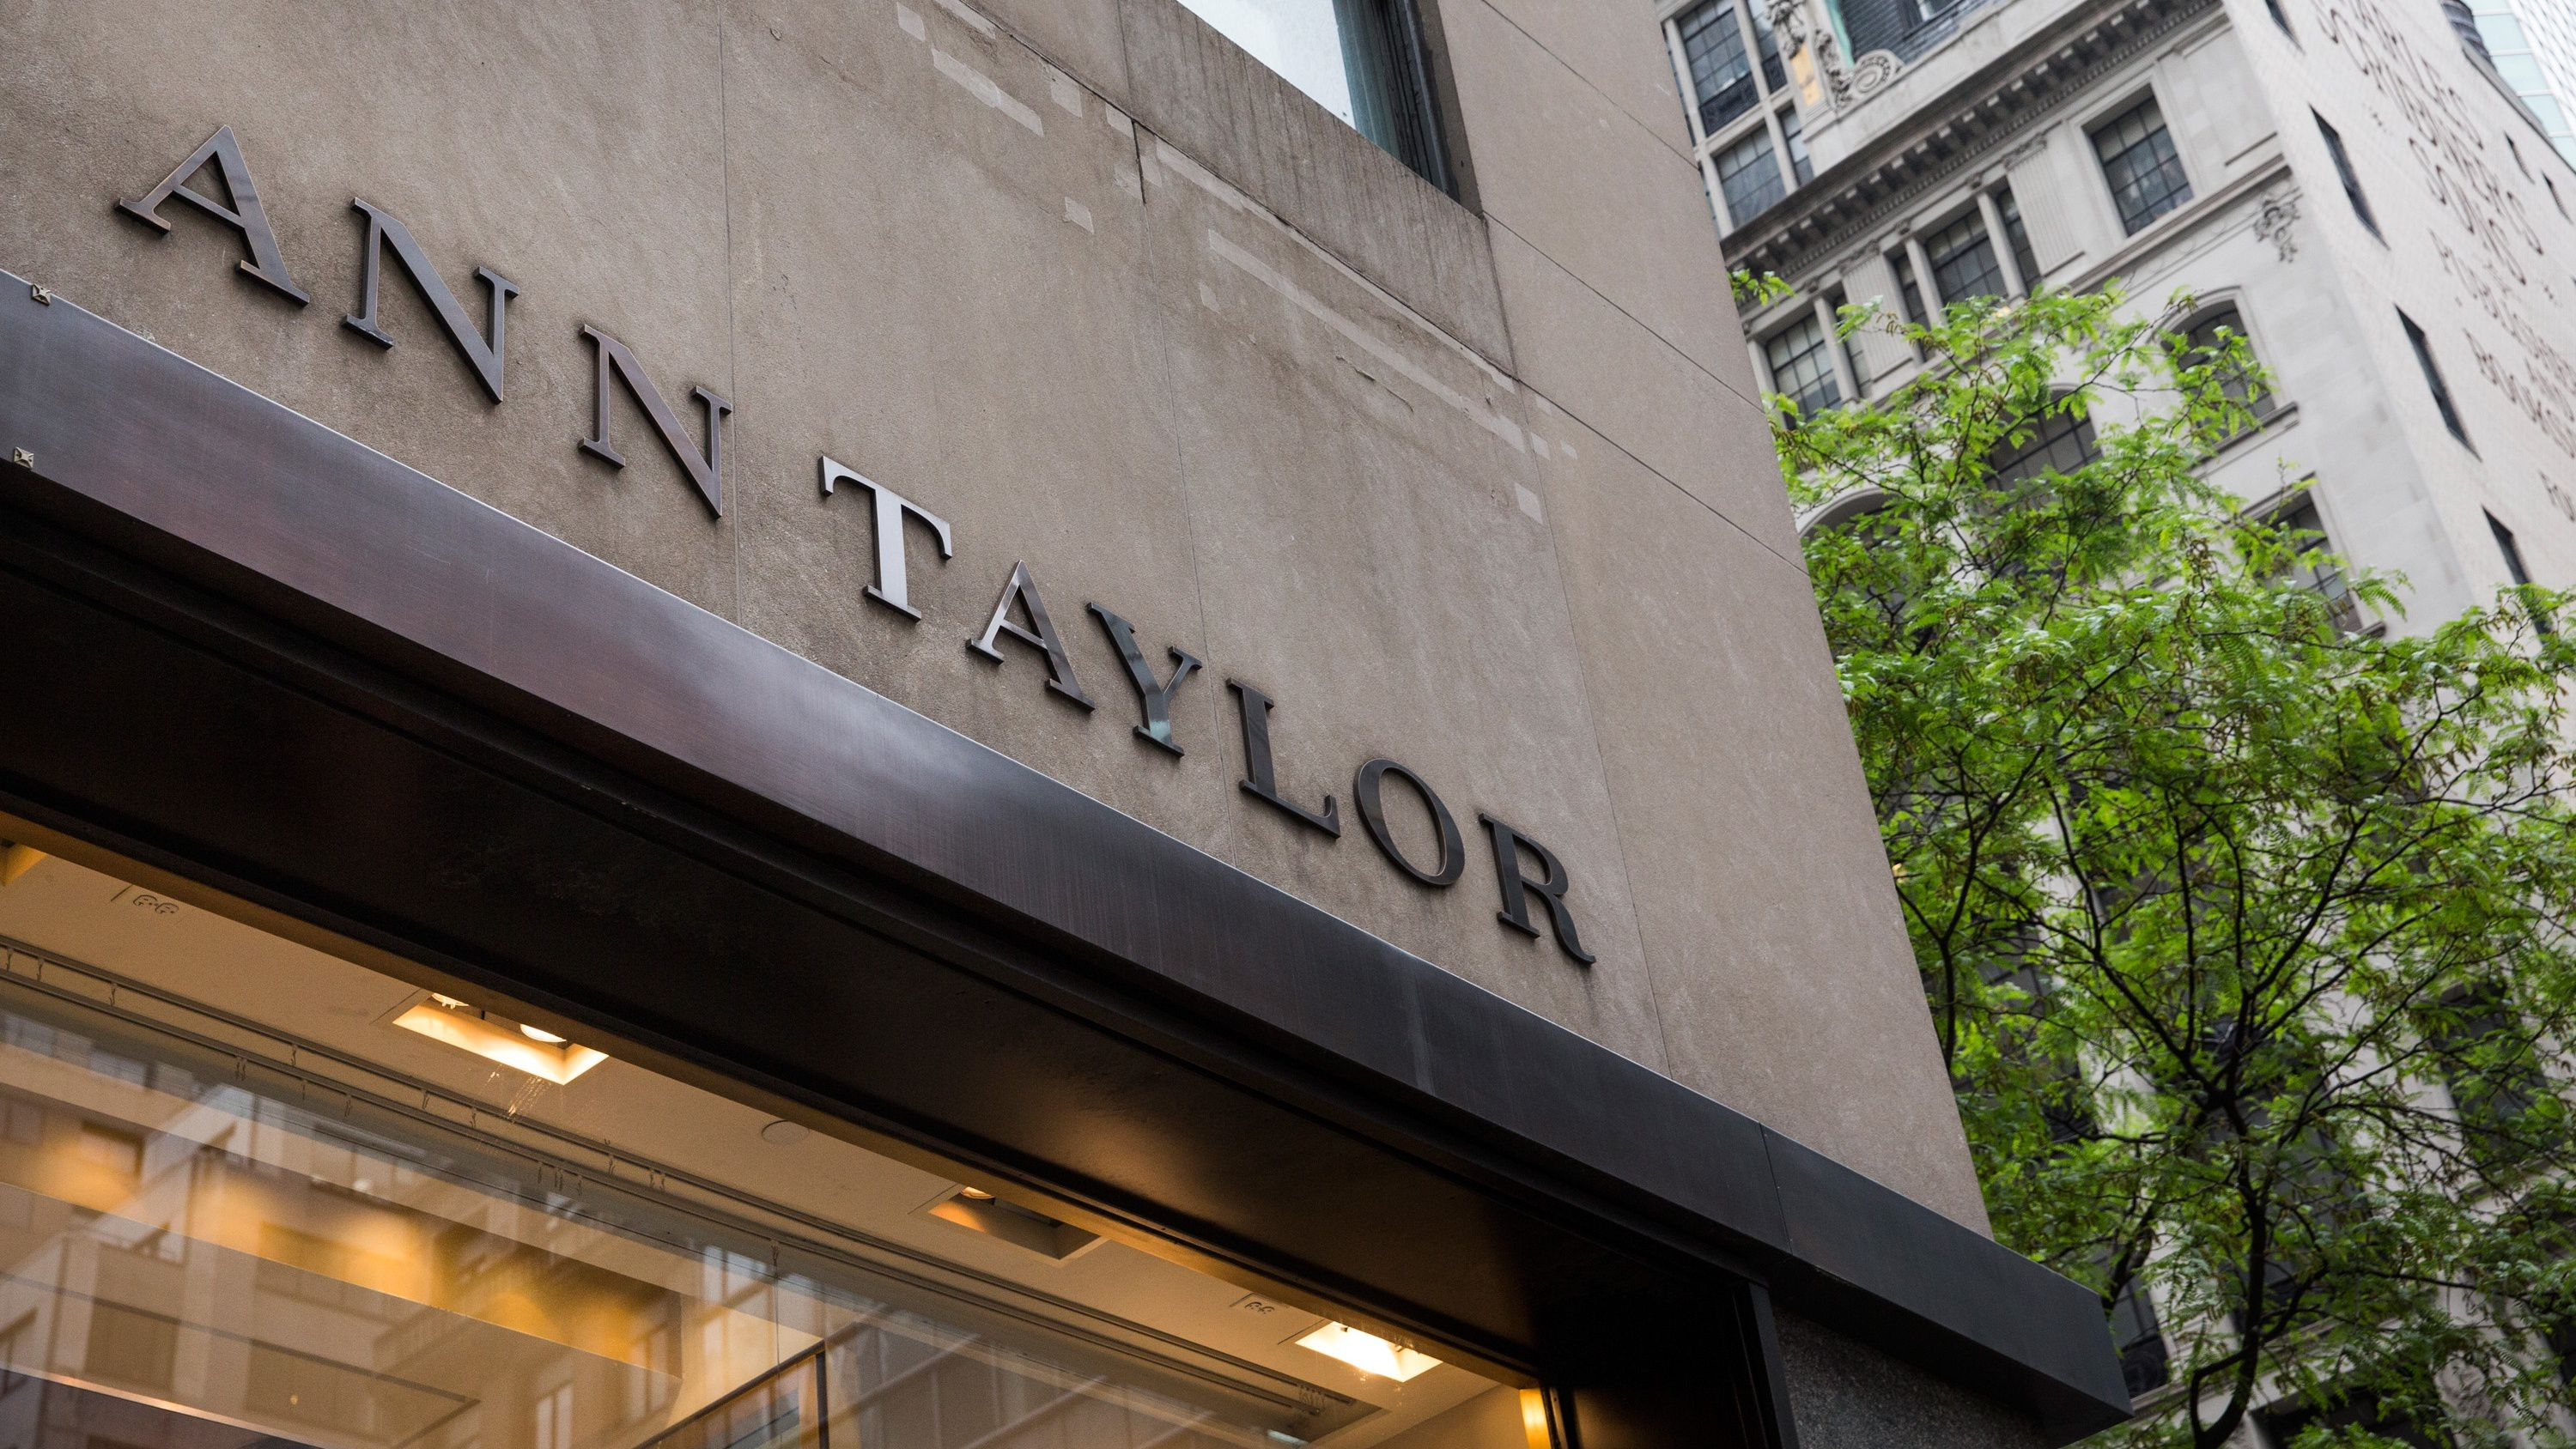 A sign for an Ann Taylor clothing store in Manhattan on May 18, 2015 in New York City. Ascena Retail Group which owns Lane Bryant and Dressbarn, announced it is purchasing Ann Taylor and Loft retail stores for $2.16 billion to expand its women's apparel business.